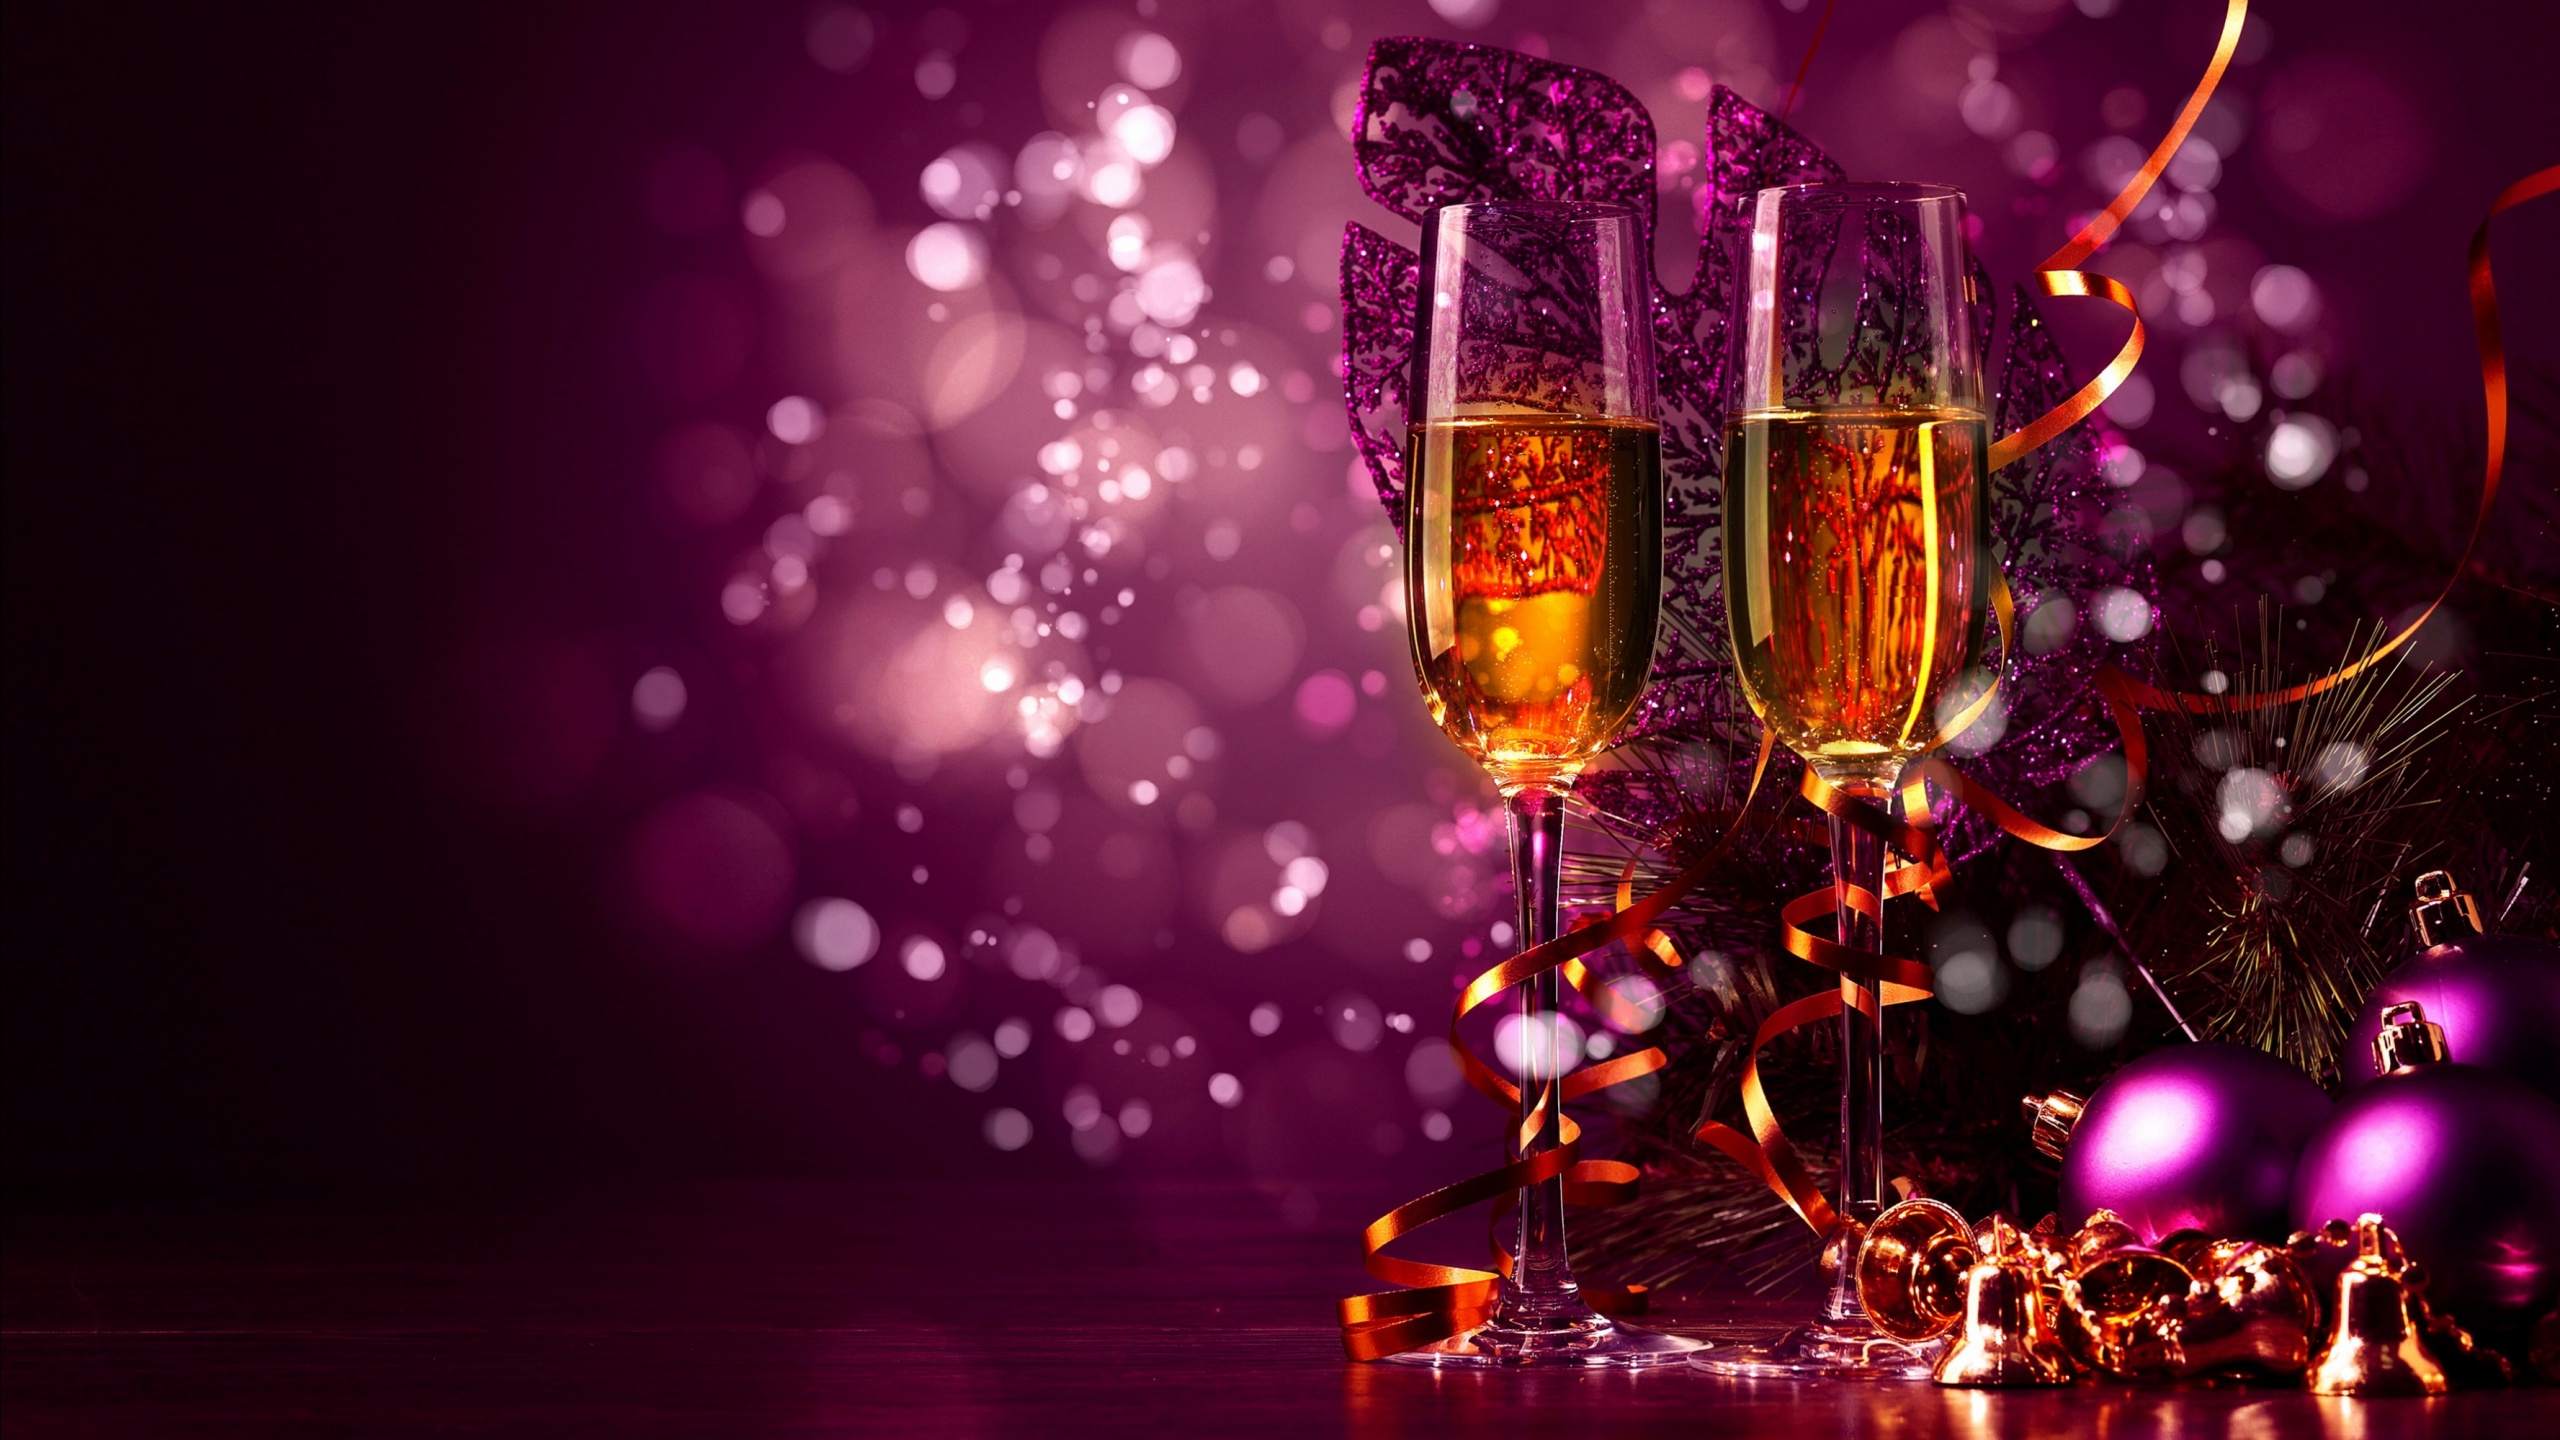 Champagne At New Year Party | 2560 x 1440 | Download | Close: https://www.bhmpics.com/view-champagne_at_new_year_party-2560x1440...